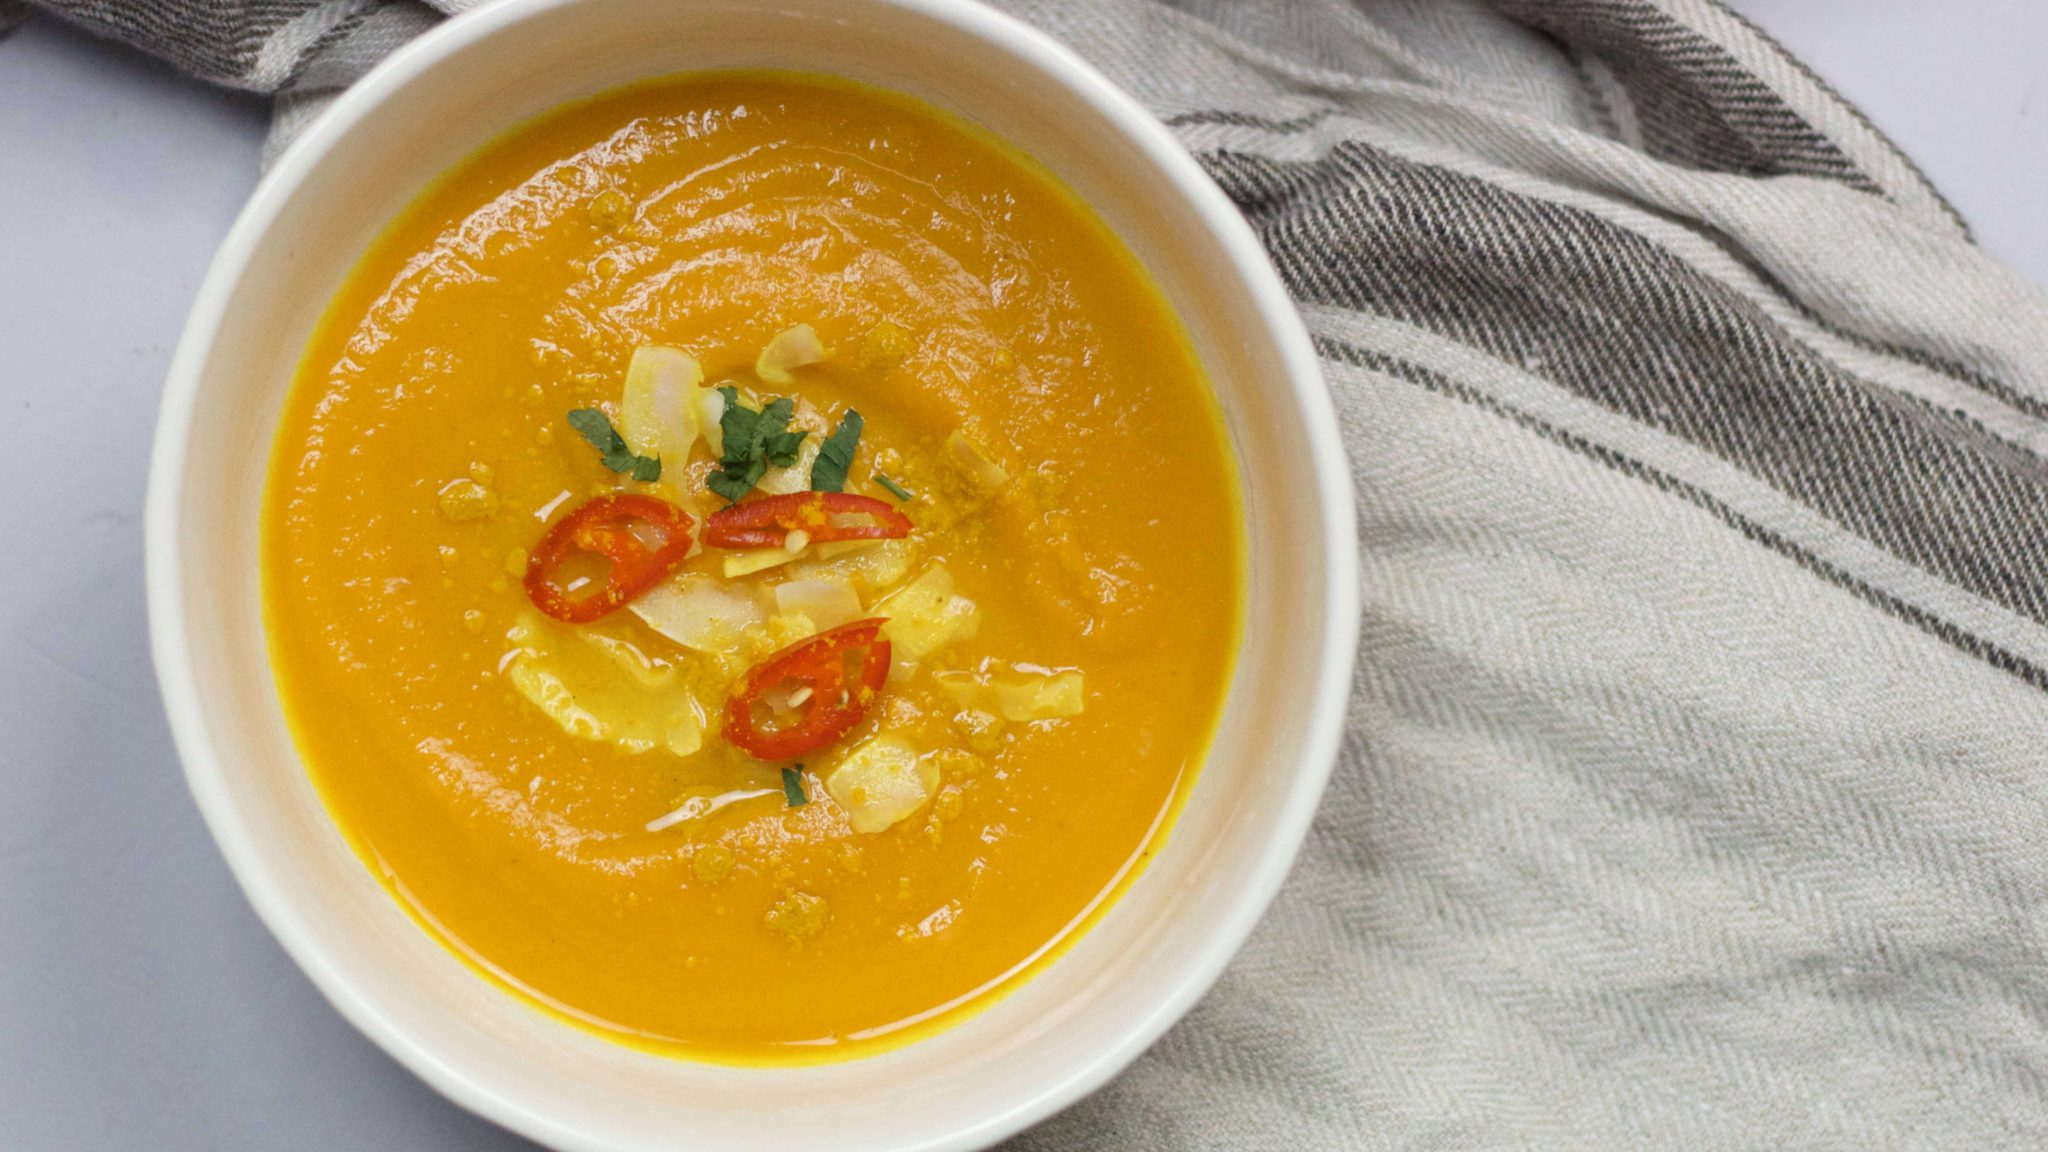 Carrot, sweet potato and chili pepper soup (VeGaN).